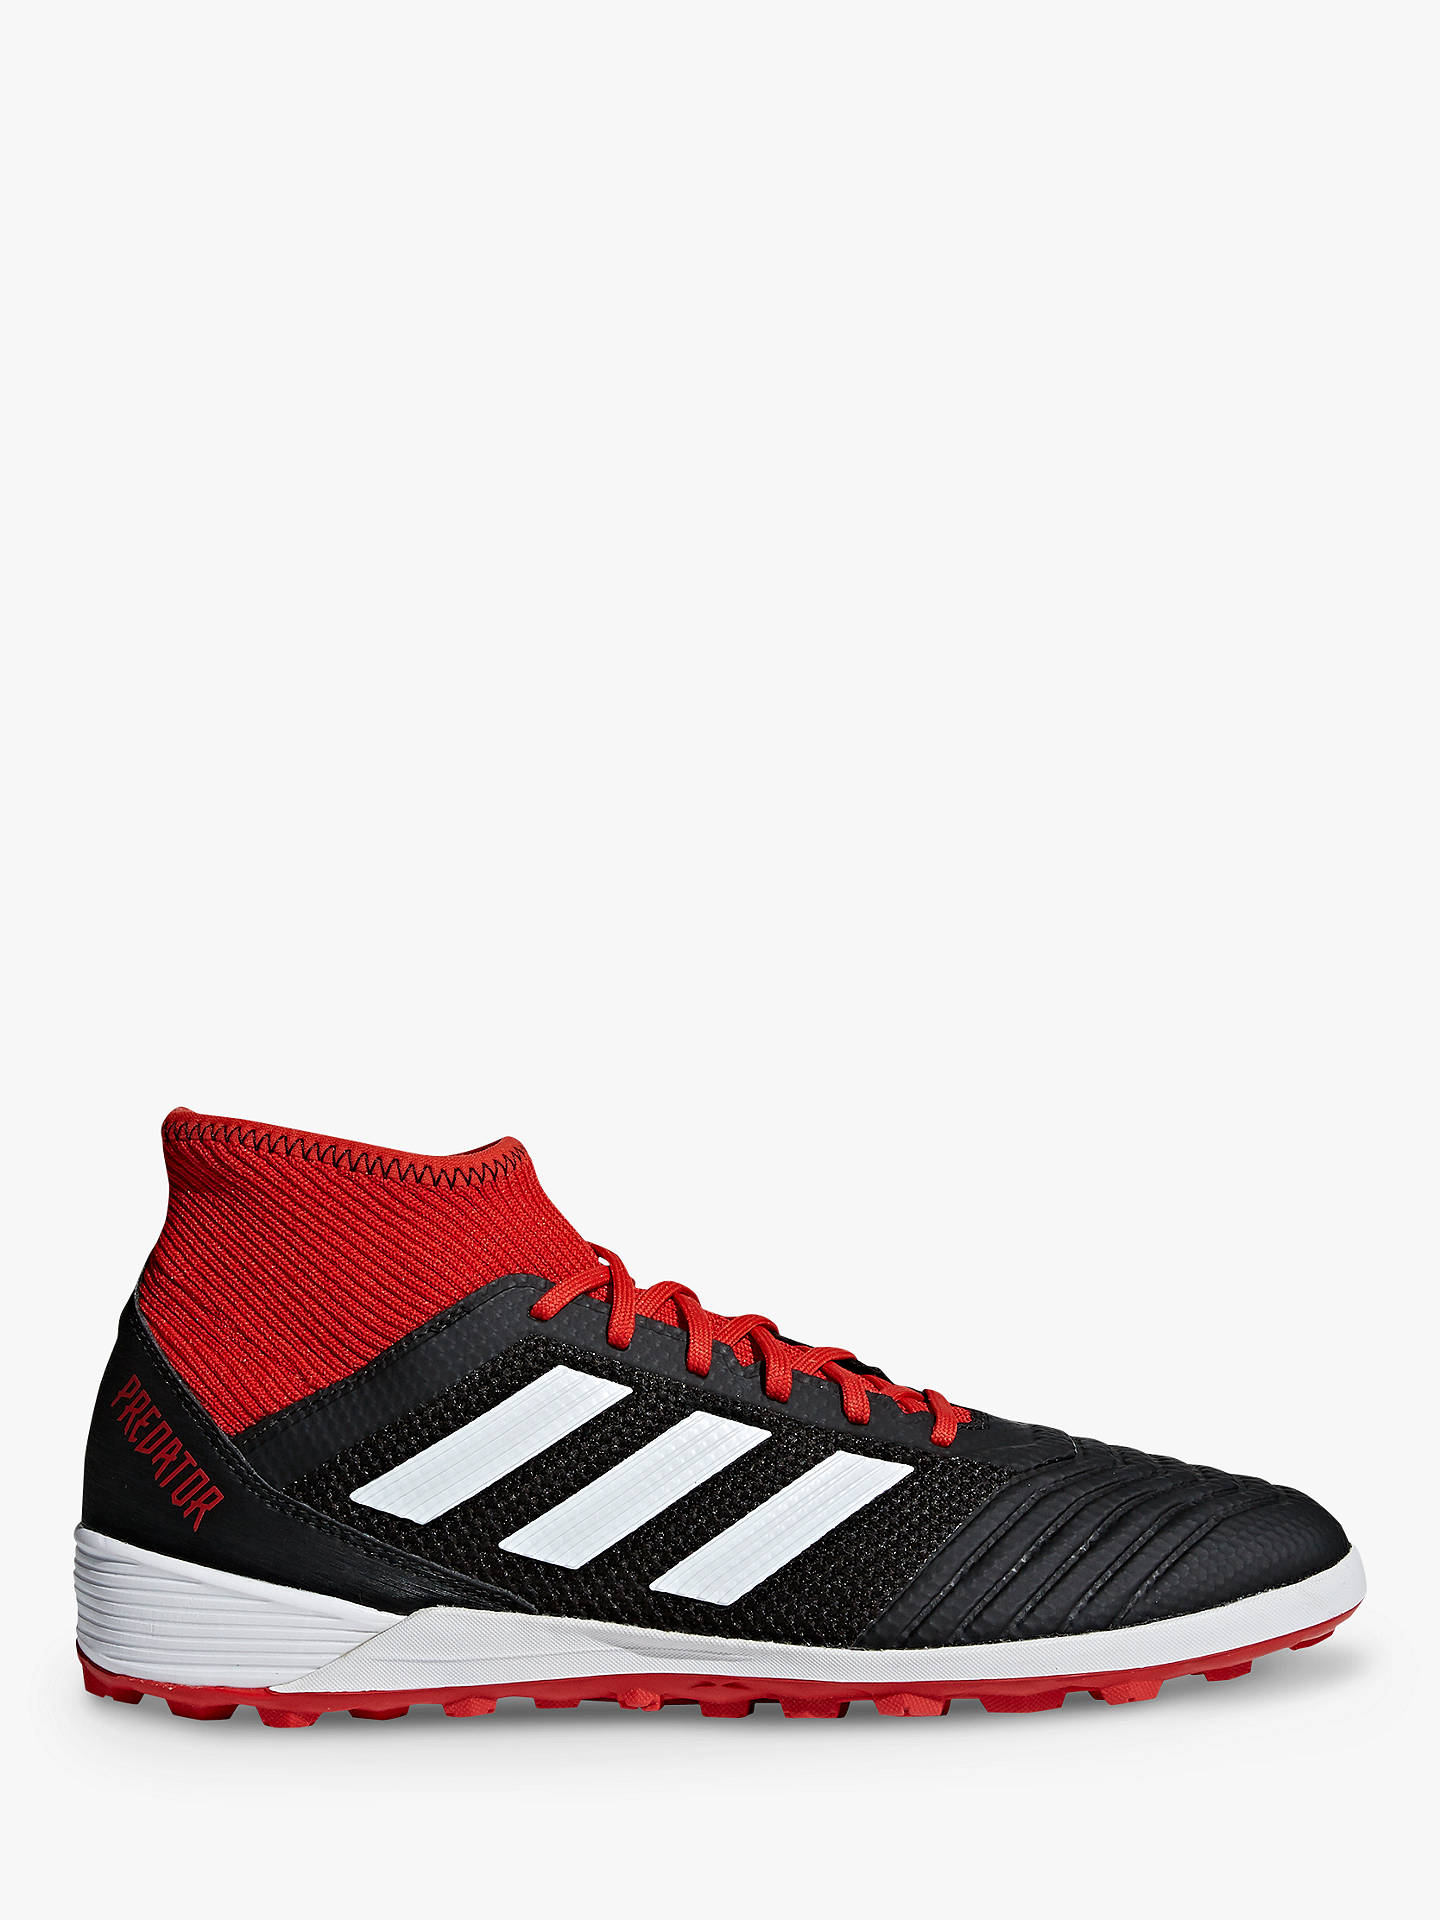 694a67a56fbf Buy adidas Predator 18.3 Men s Artificial Turf Football Boots